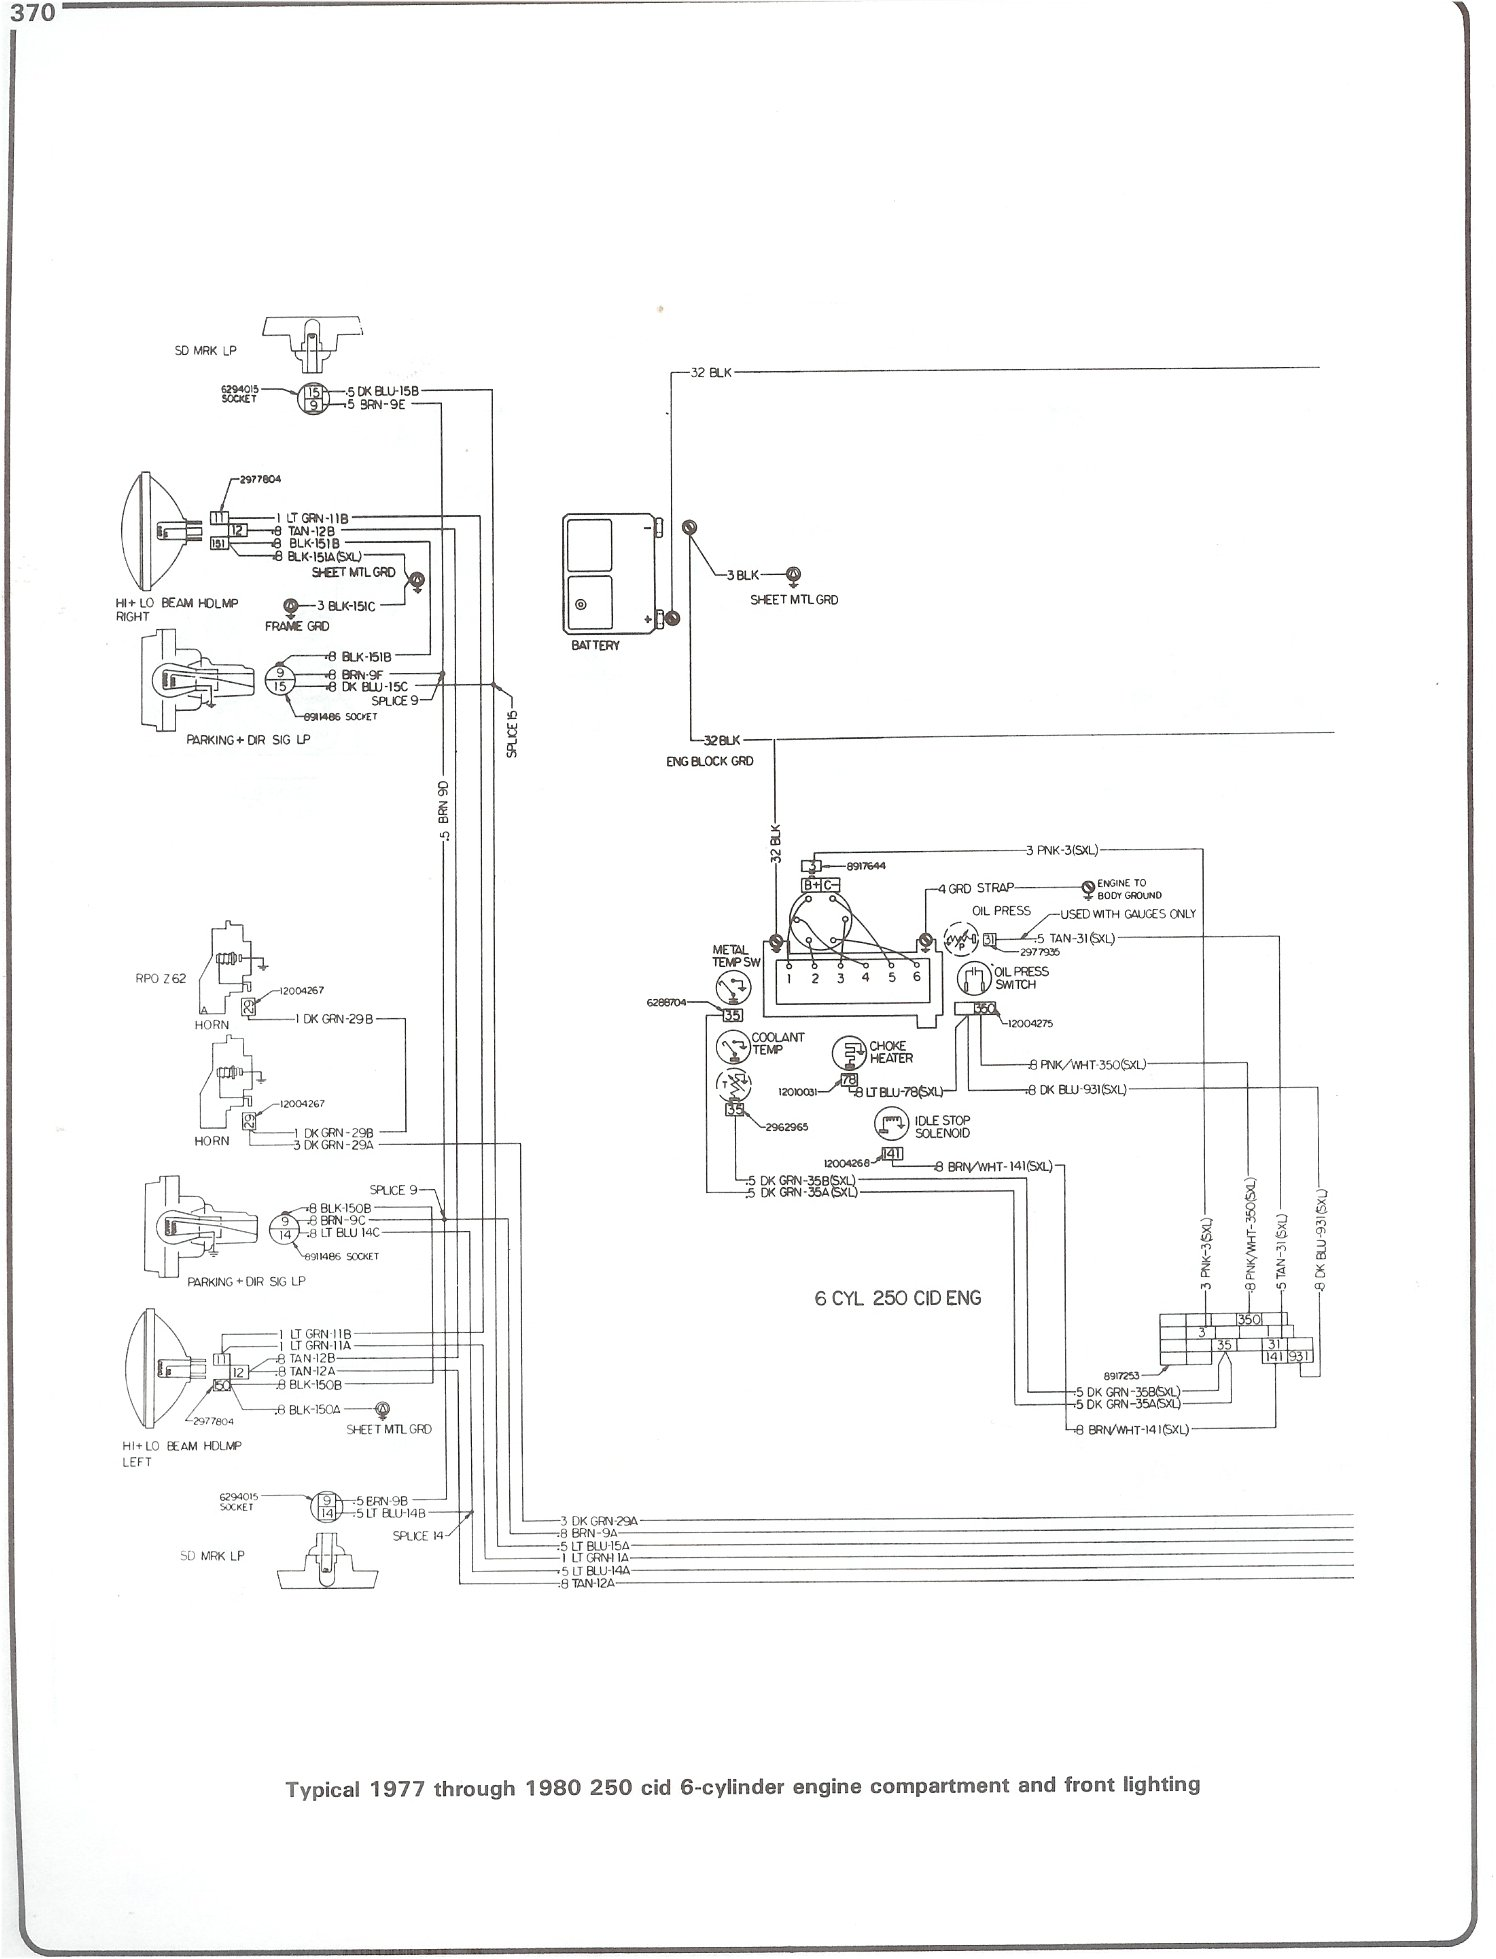 1985 Gmc Engine Diagram Great Installation Of Wiring 99 Z71 Sierra Diagrams Complete 73 87 Rh Forum 87chevytrucks Com 2014 Silverado